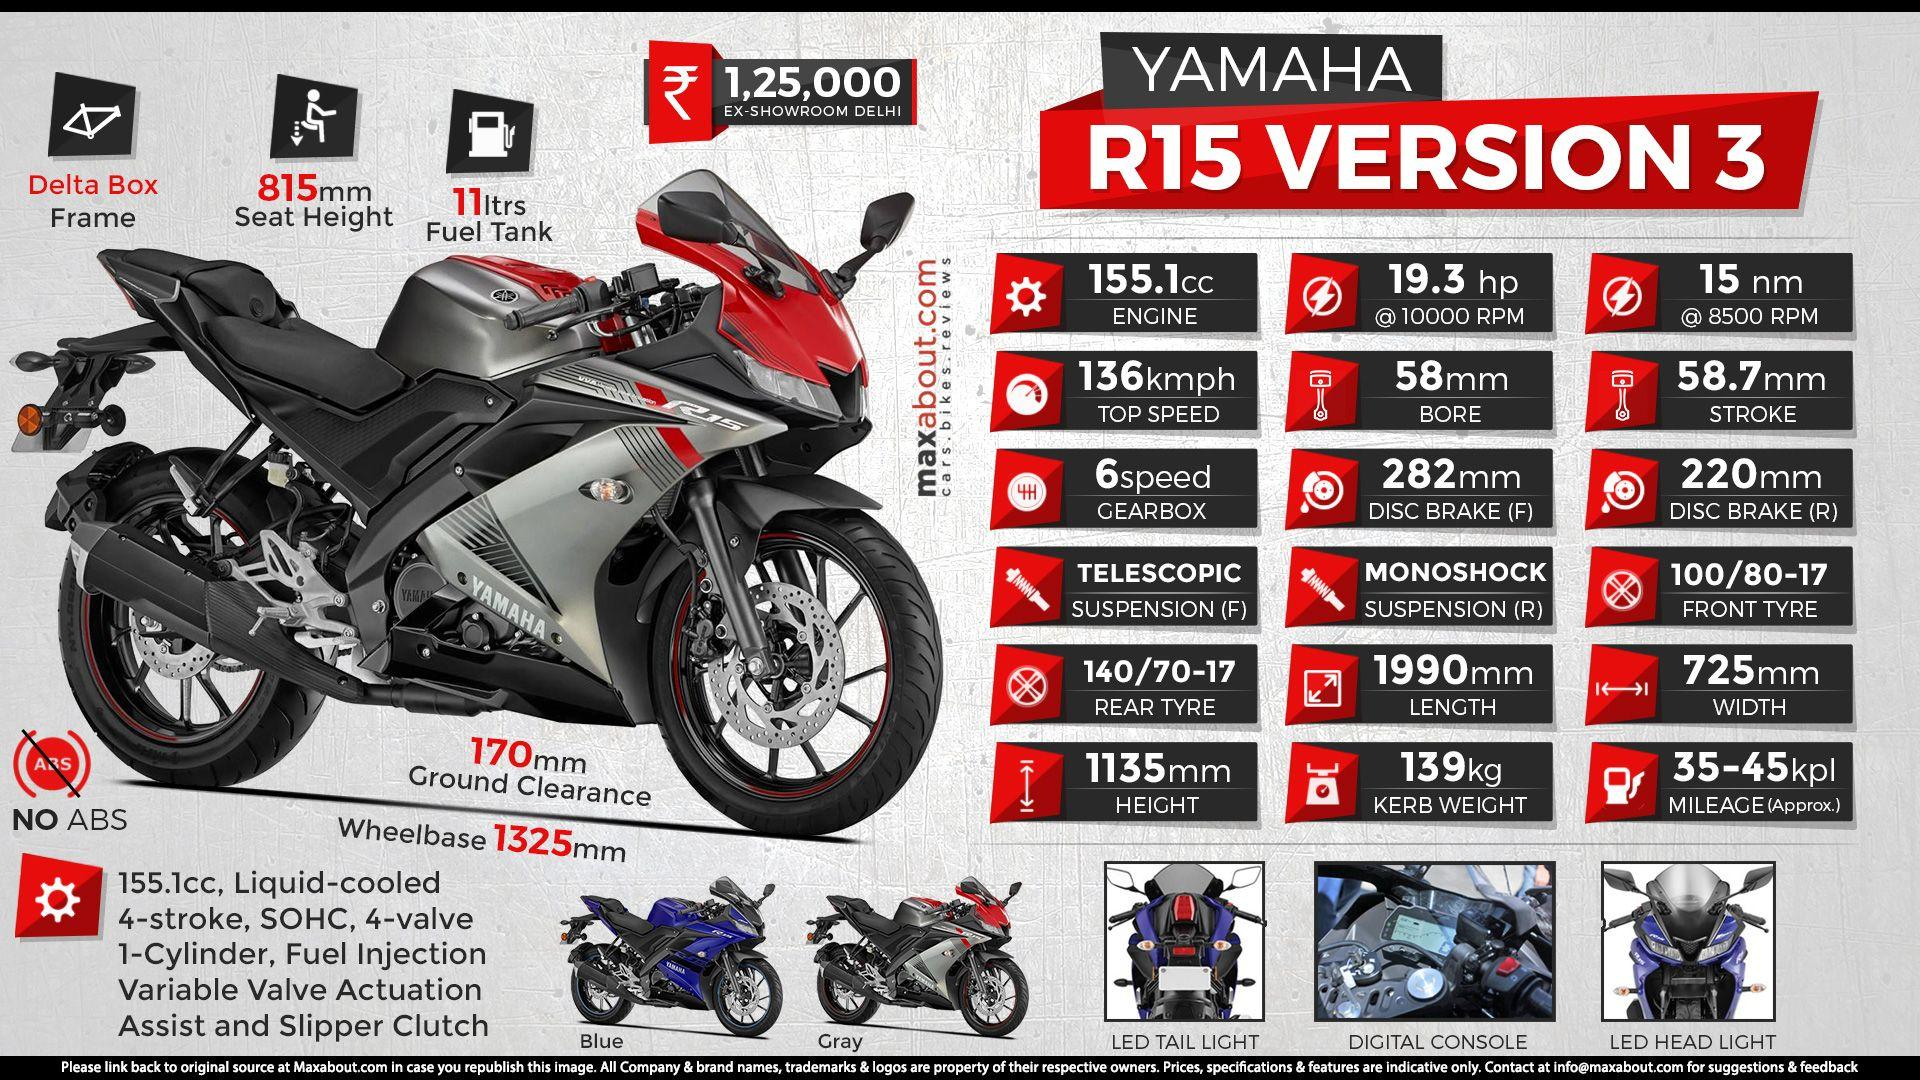 Yamaha R15 V3 Wallpapers - Wallpaper Cave